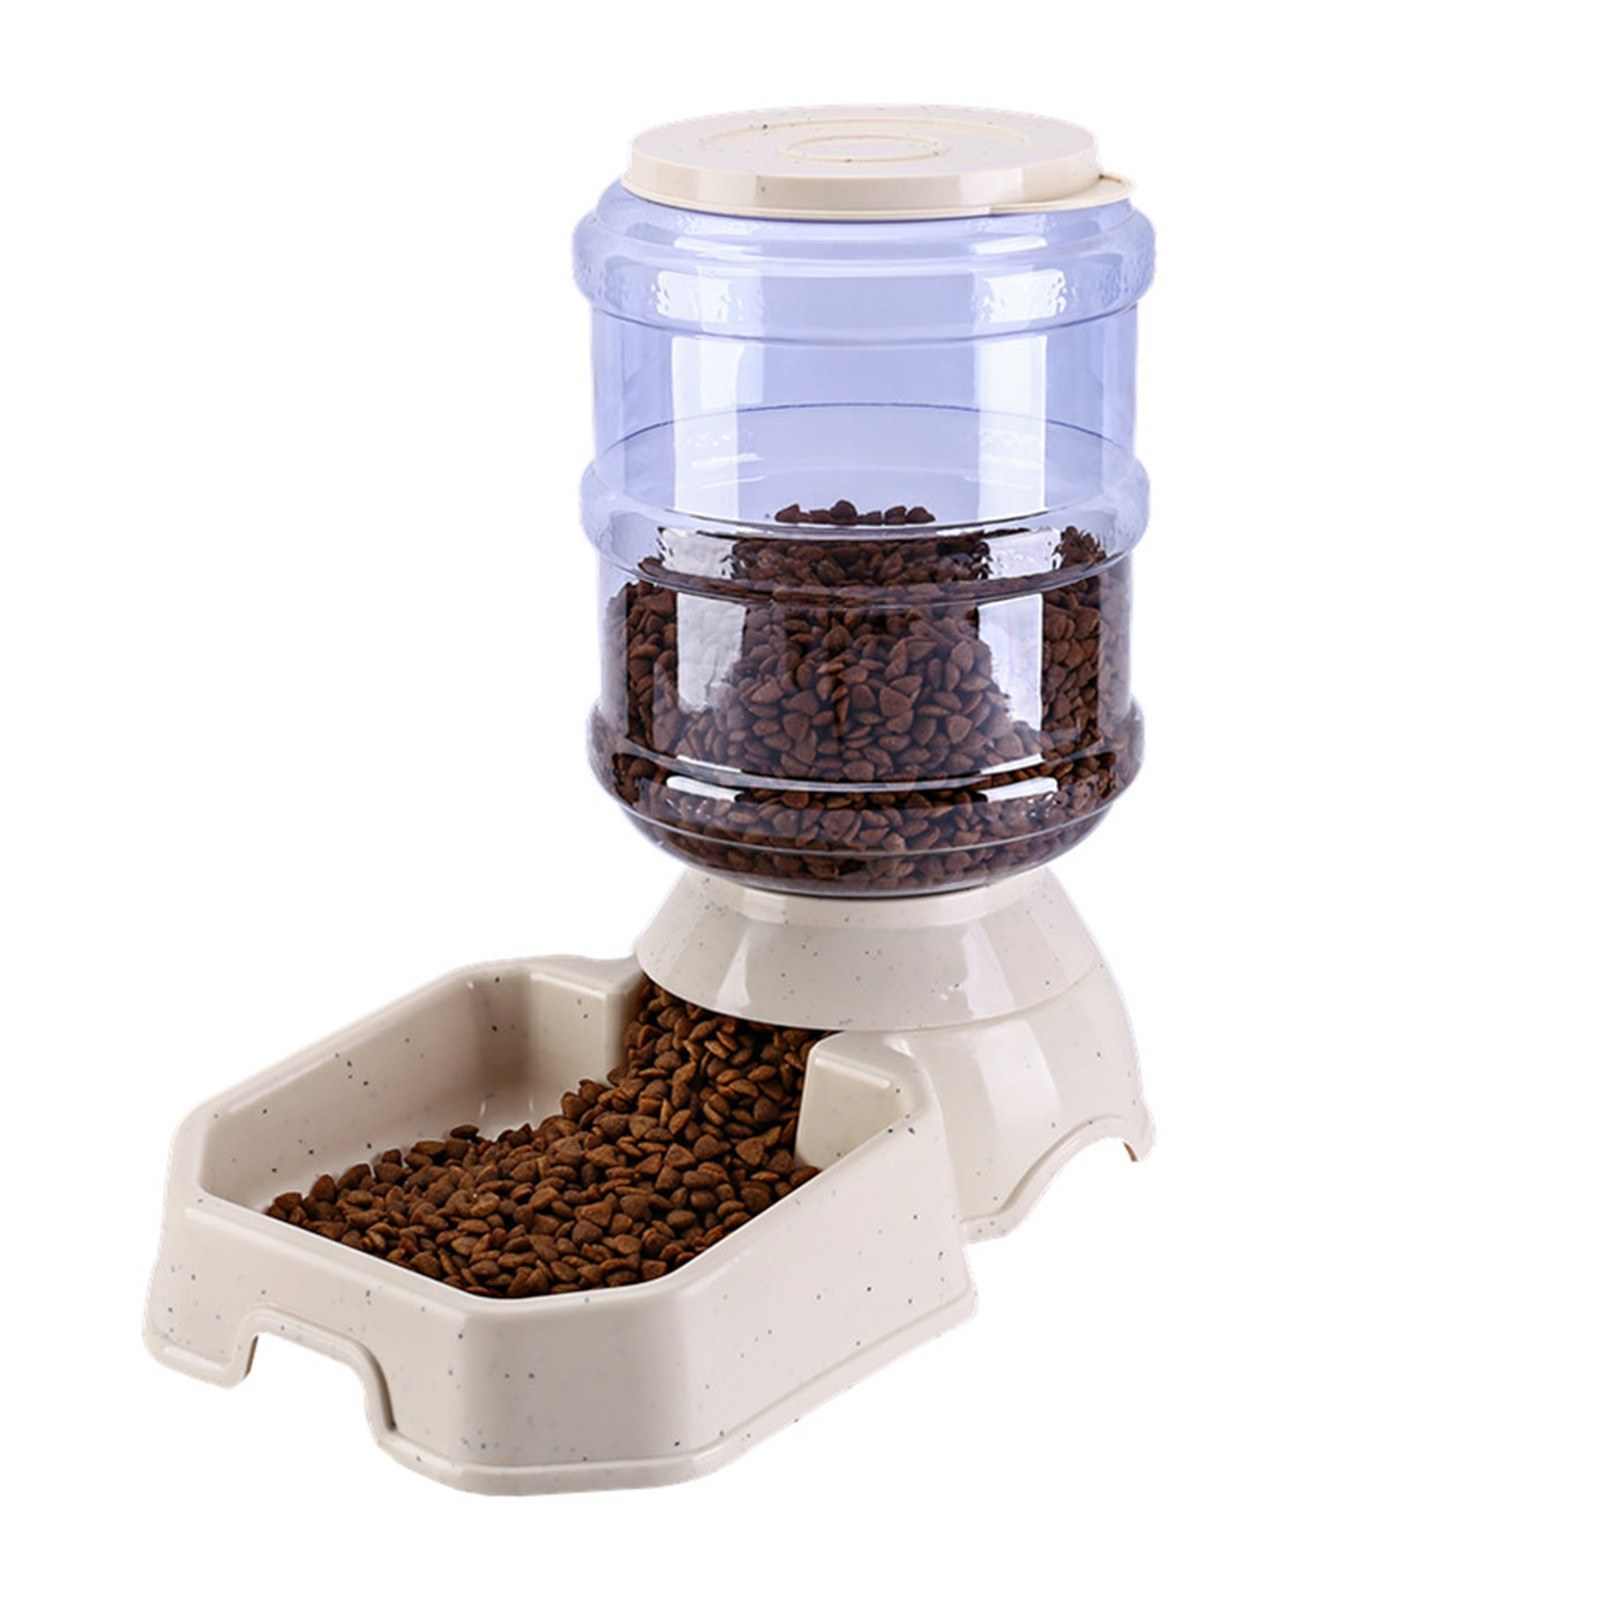 Deal Automatic Pet Water Food Dispenser 3 8l Large Capacity Self Dispensing Gravity Pet Feeder Waterer Cat Dog Feeding Bowl Drinking Water Device Perfect For Using When You Re Going Out For Traveling Or Working